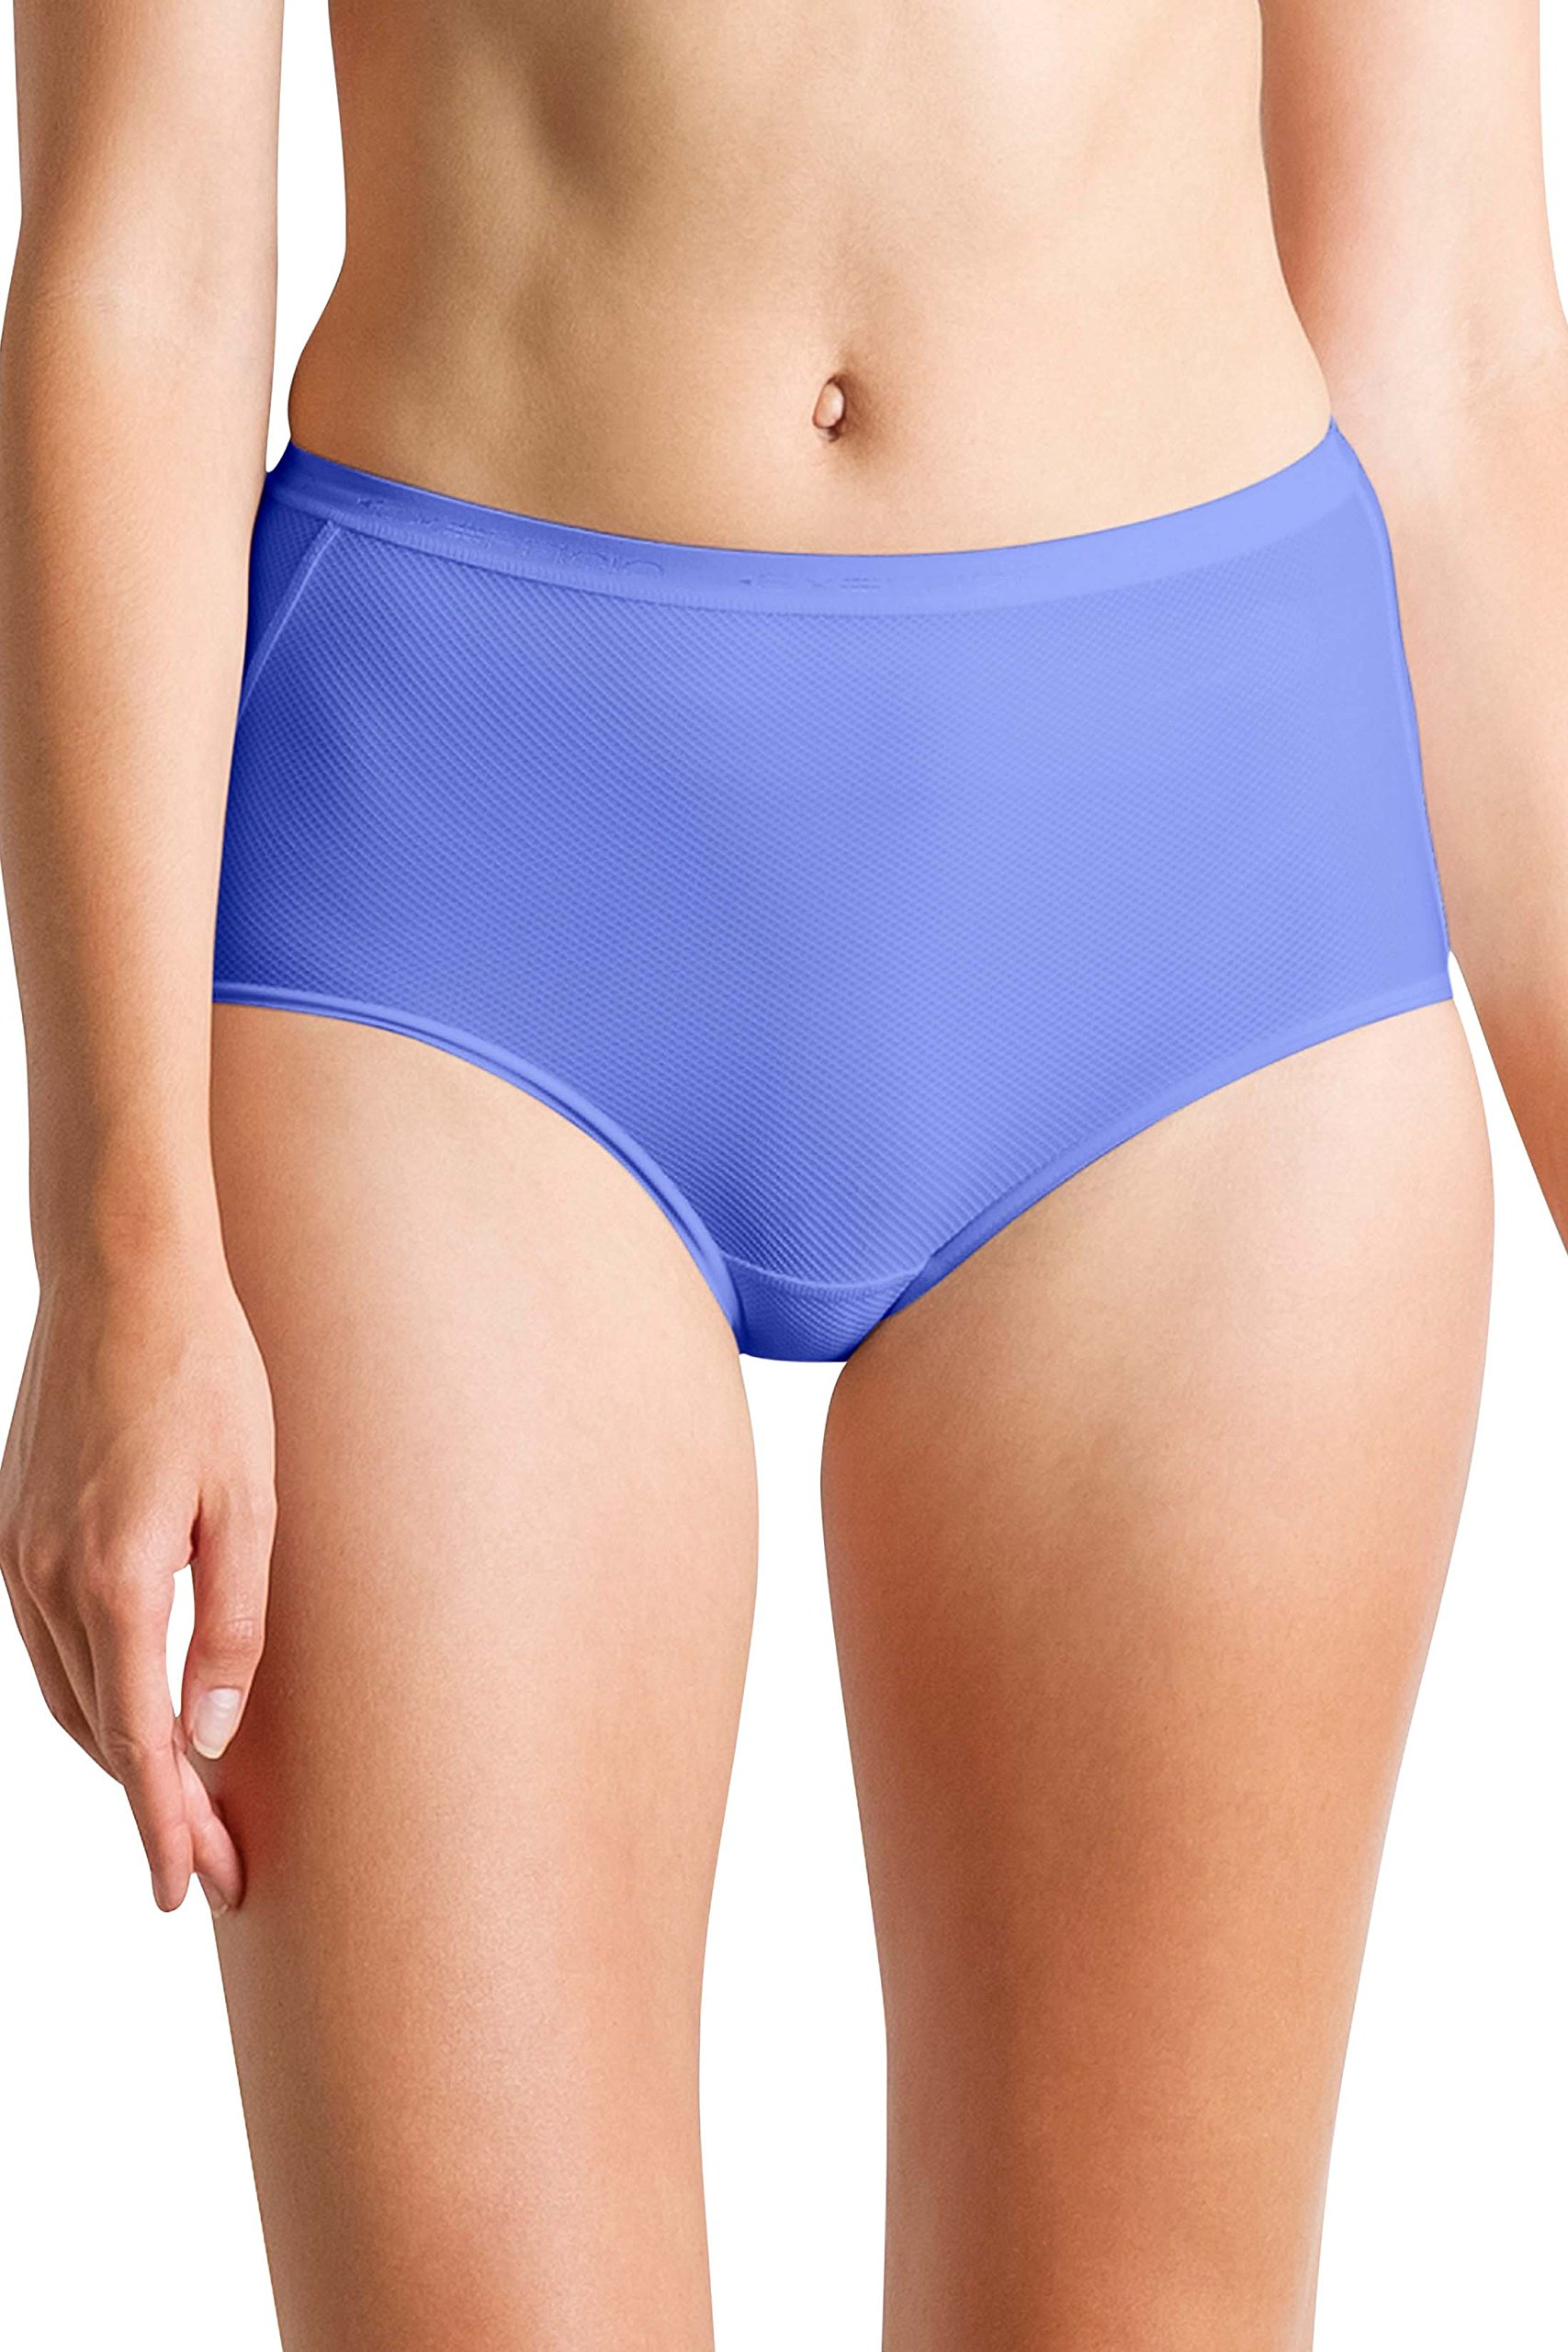 ExOfficio Women's Give-N-Go Full Cut Mesh Brief, Baja Blue, Medium